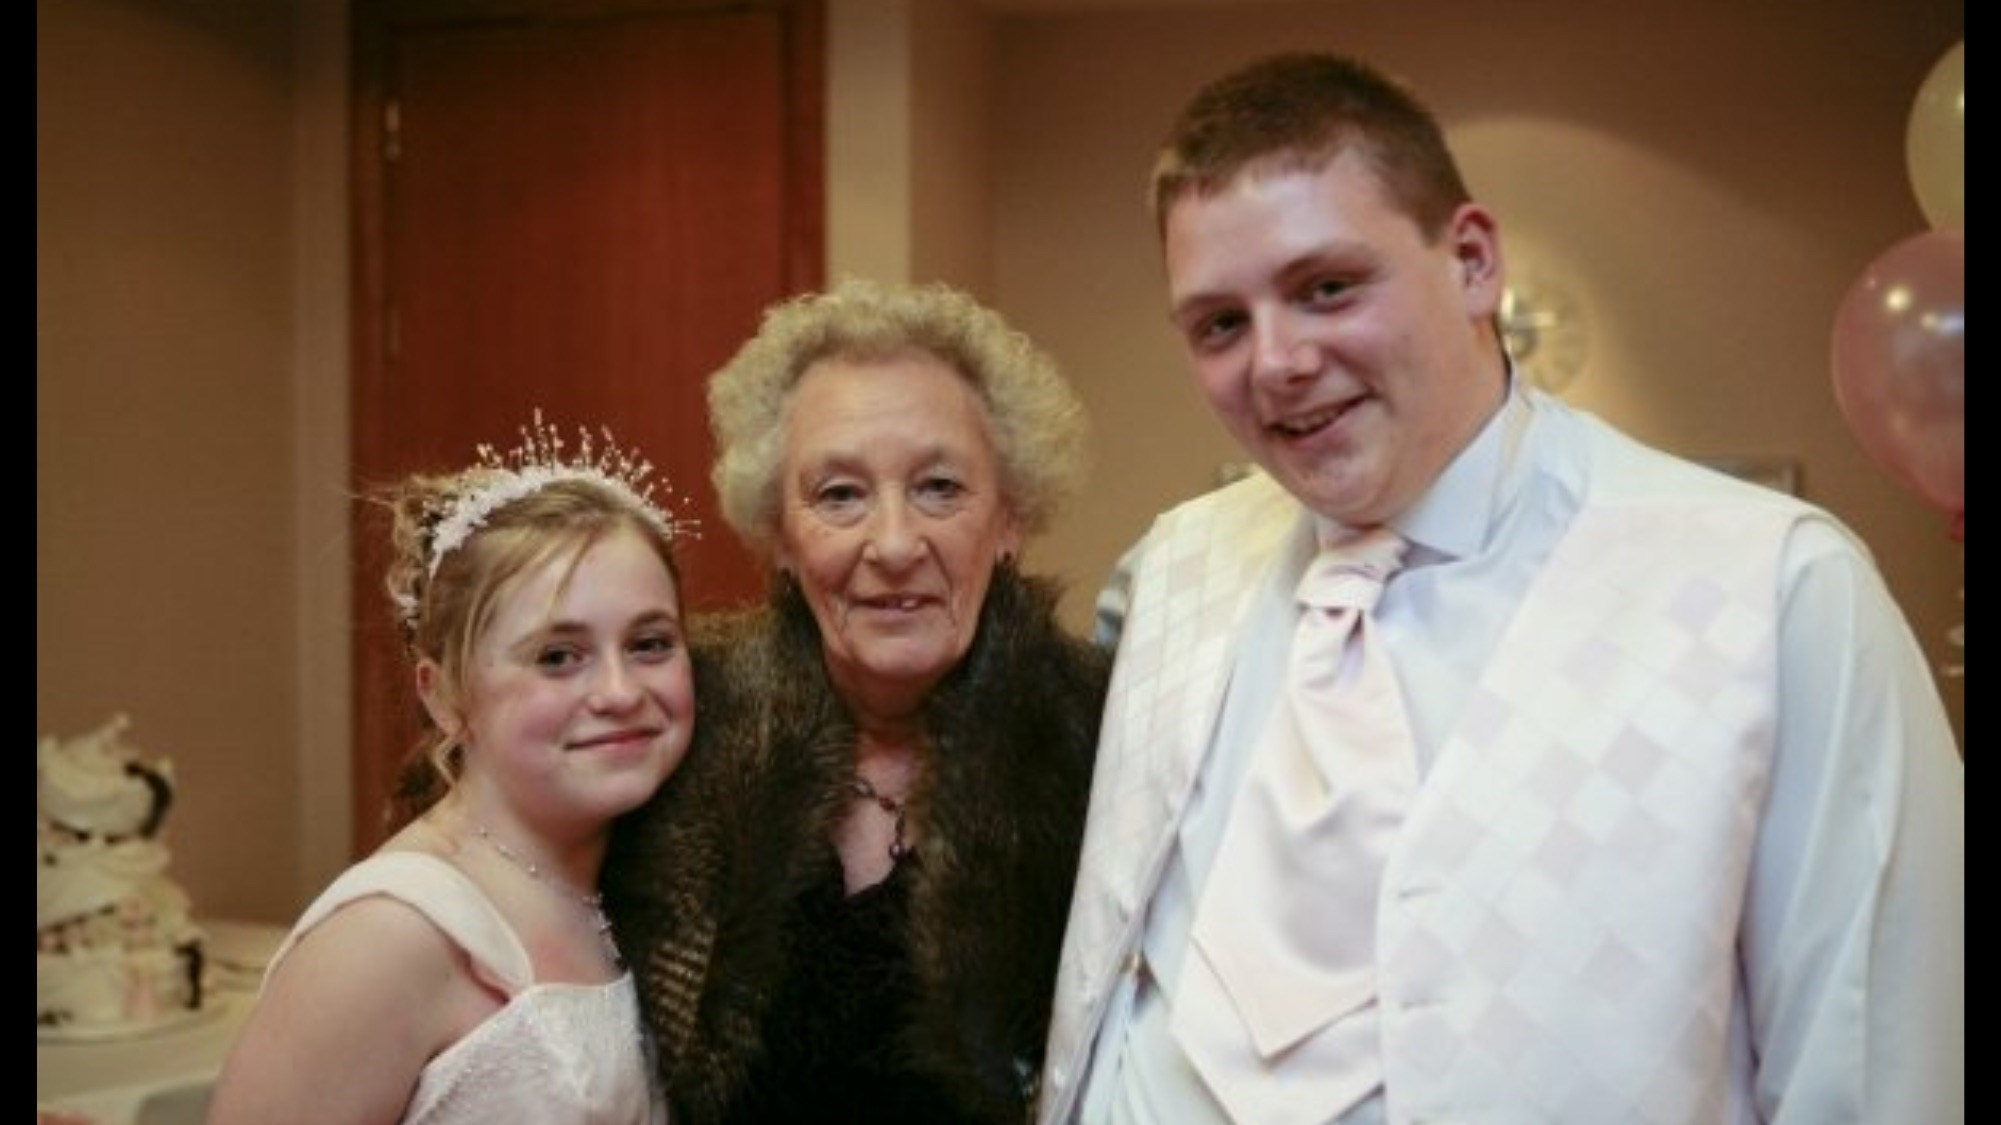 Simply the best Gran in the world!  We all miss you so much xx